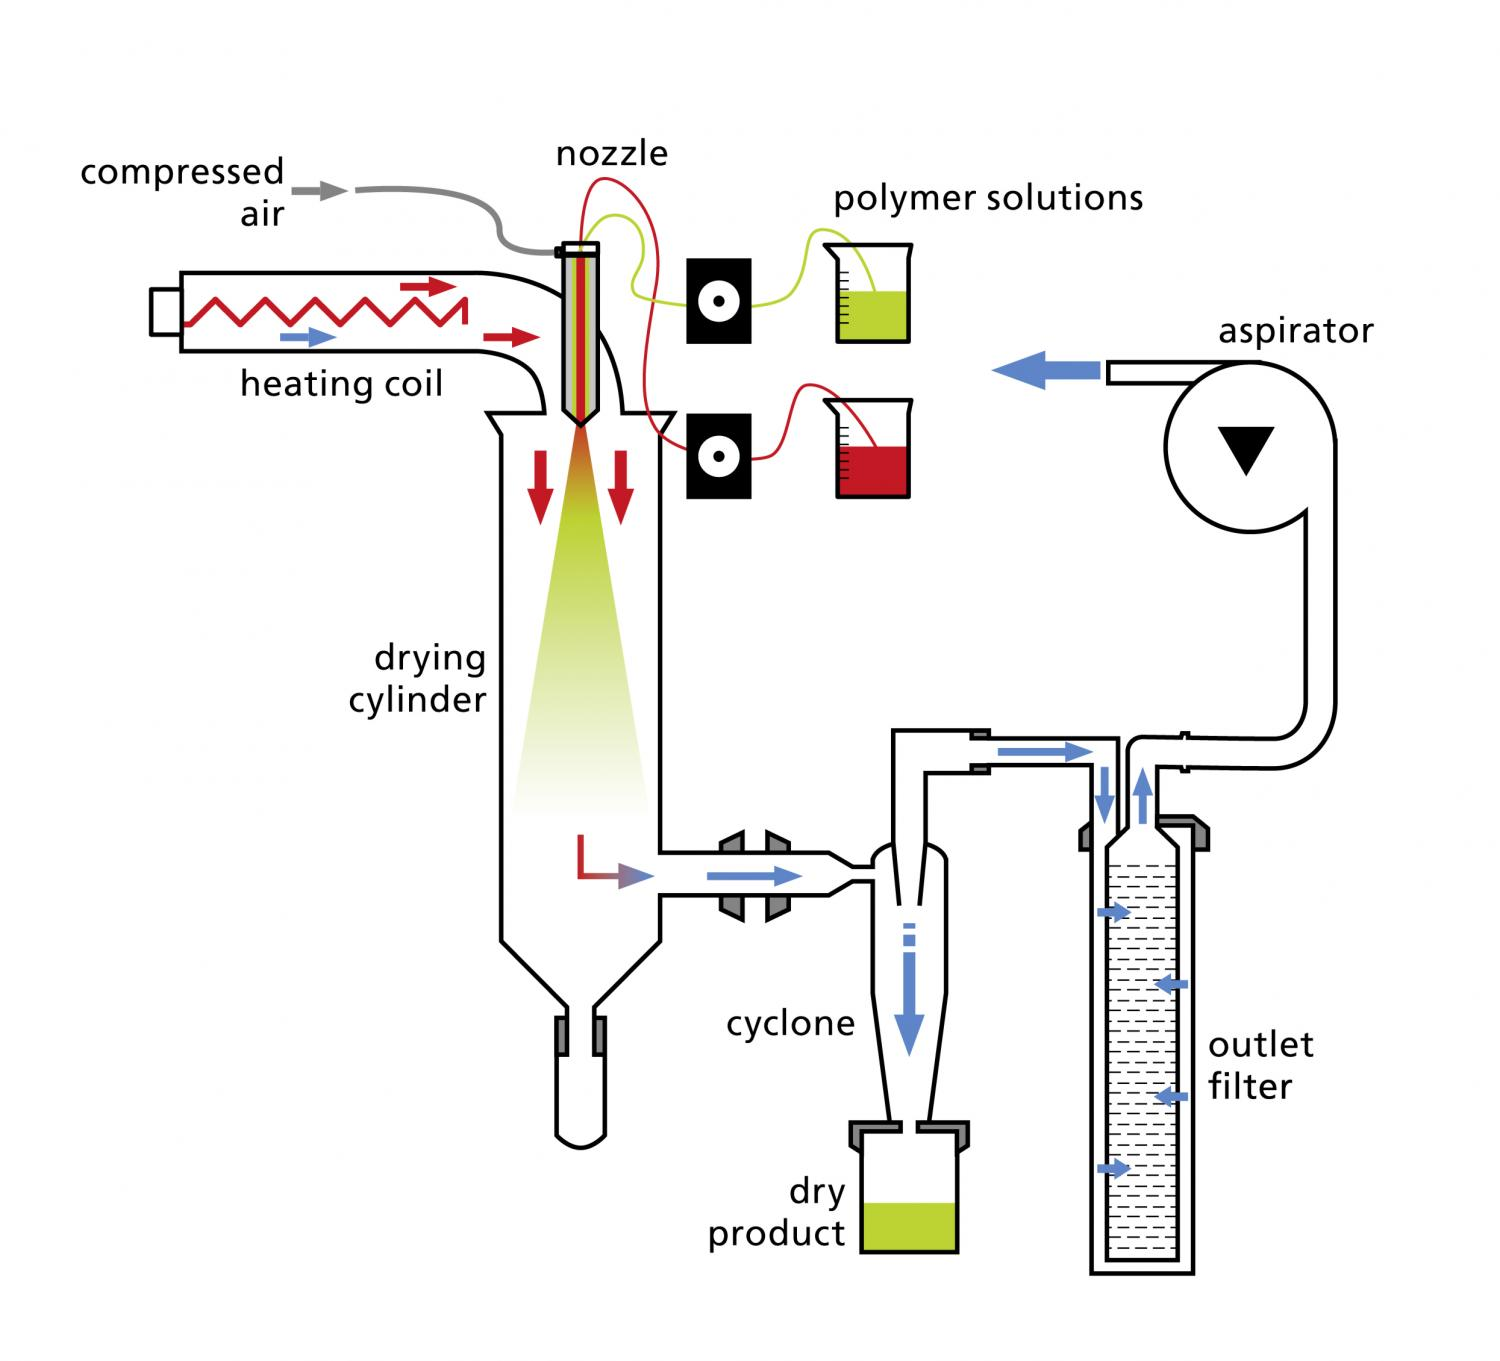 Spray Dryingperfect Dosing Thanks To Drug Capsules Dryer Schematic Diagram Of The Drying Process